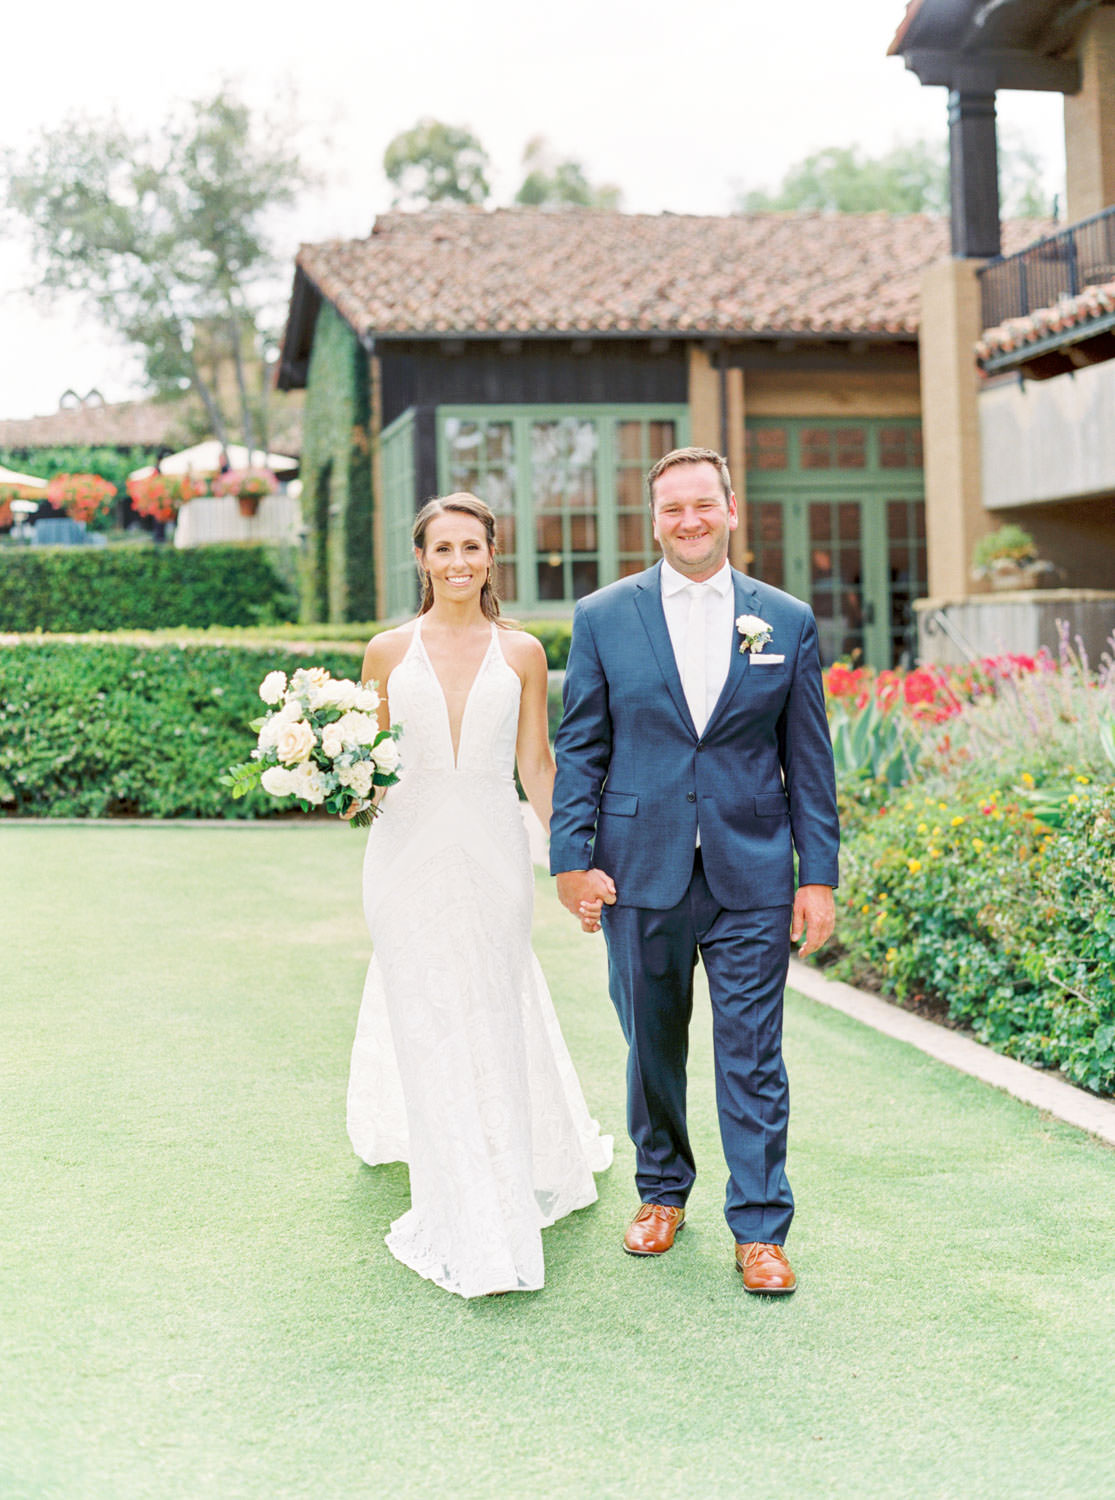 Bride and groom portrait in a Rue de Seine gown, White green and blue wedding at the Santaluz Club, film by Cavin Elizabeth Photography